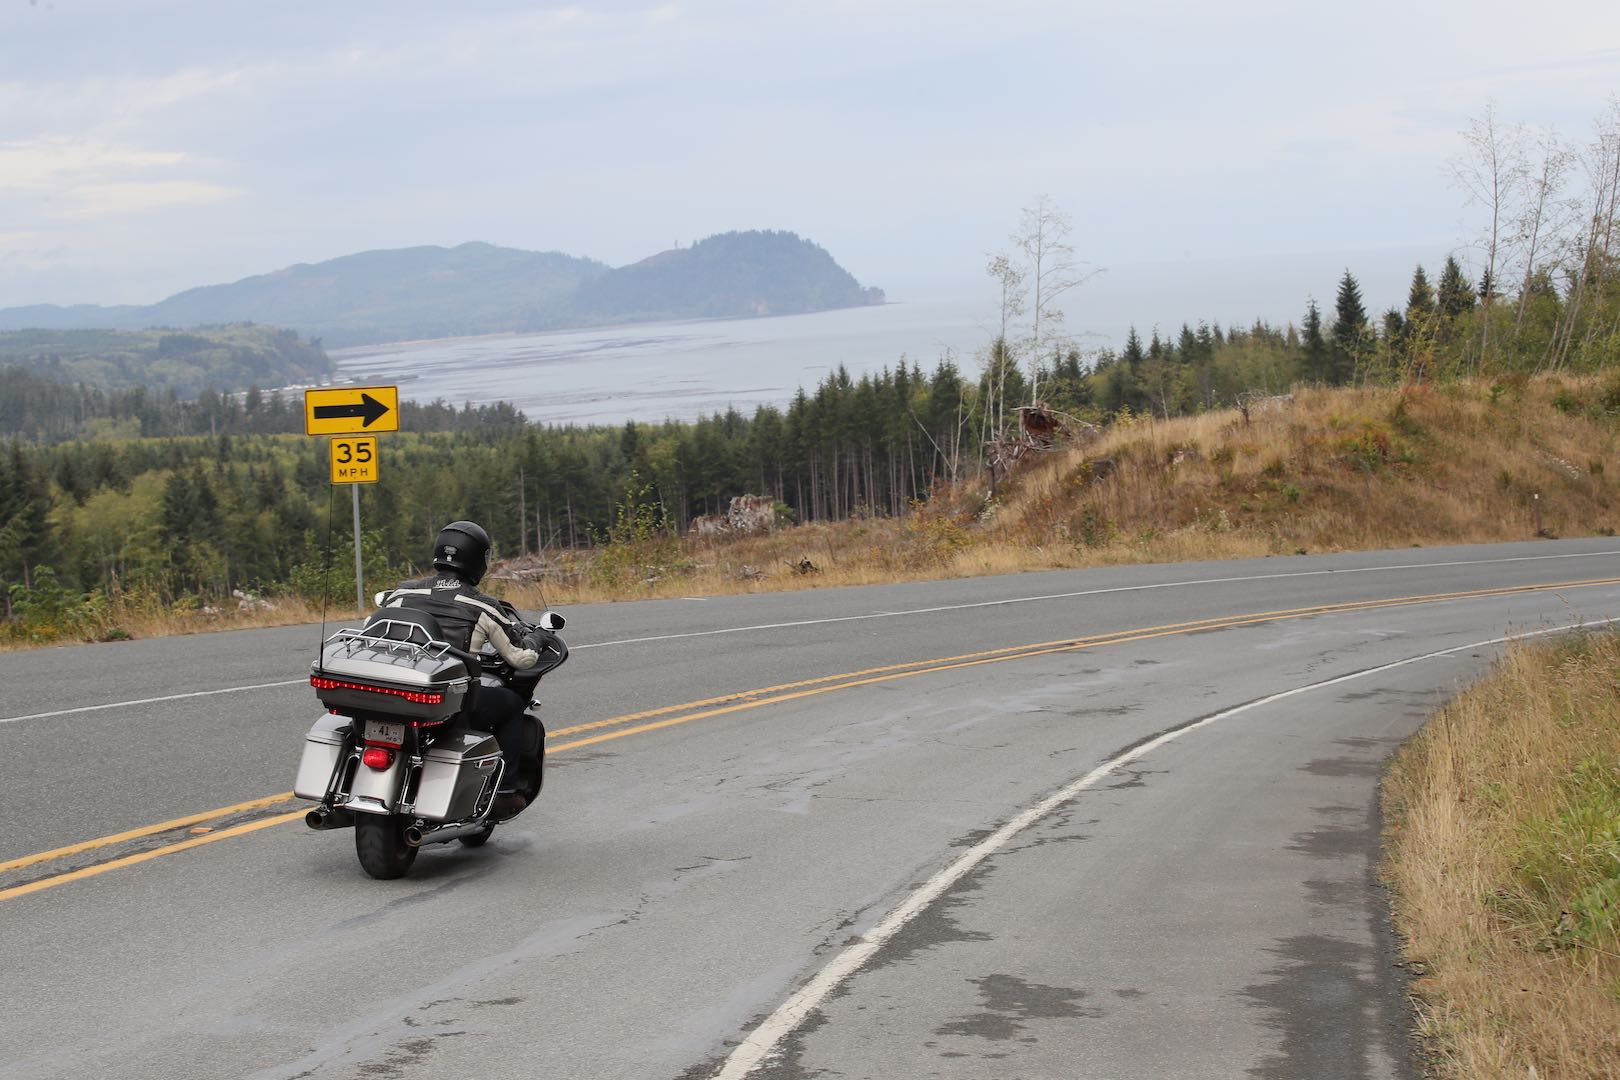 2017 Harley-Davidson Road Glide Ultra Review | 107 First Ride